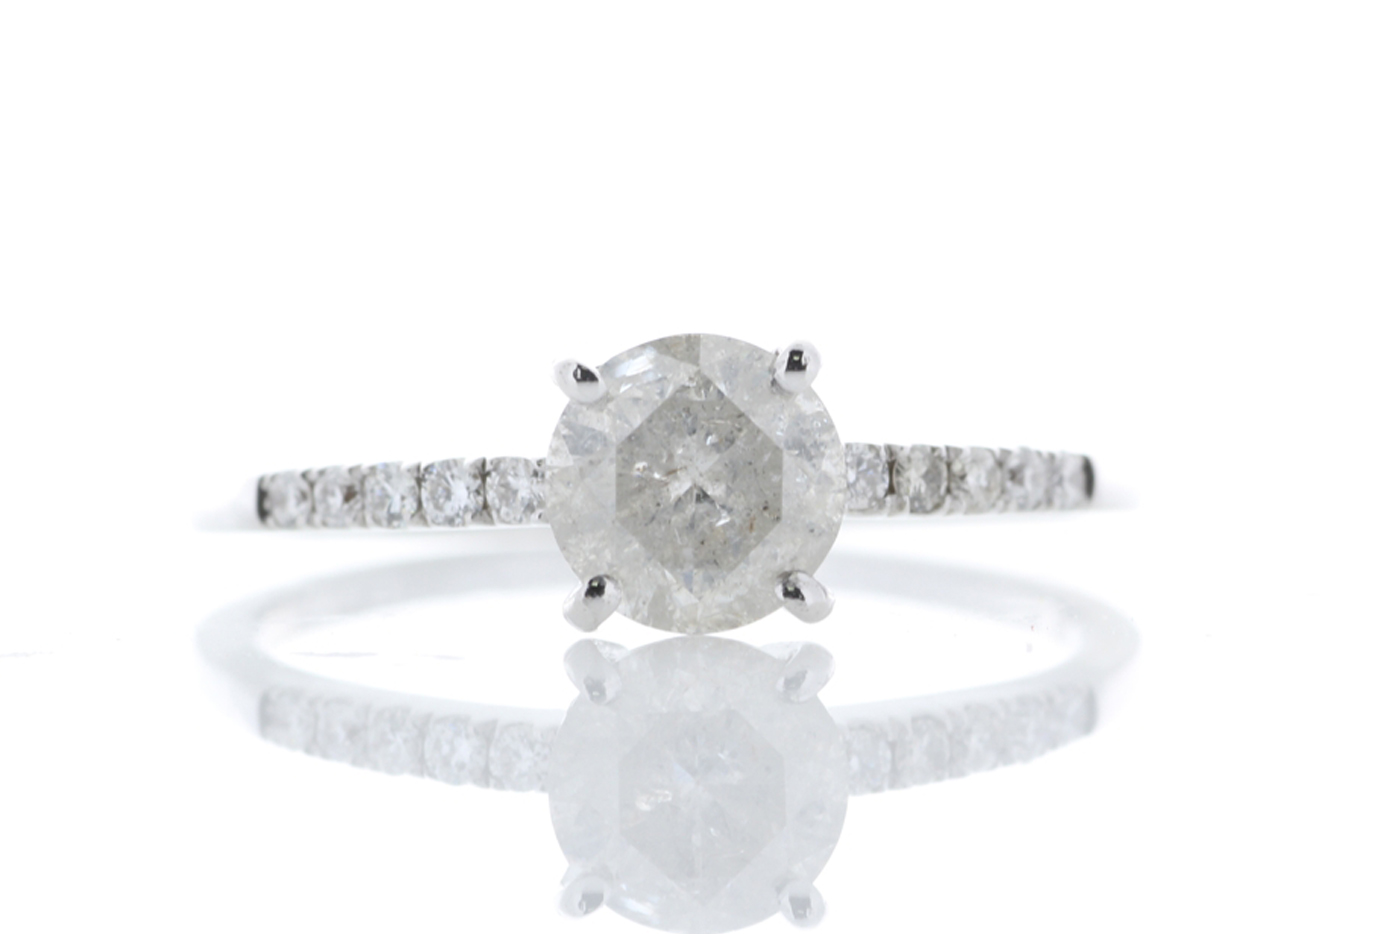 Lot 20 - 18ct White Gold Diamond Ring 1.01 Carats